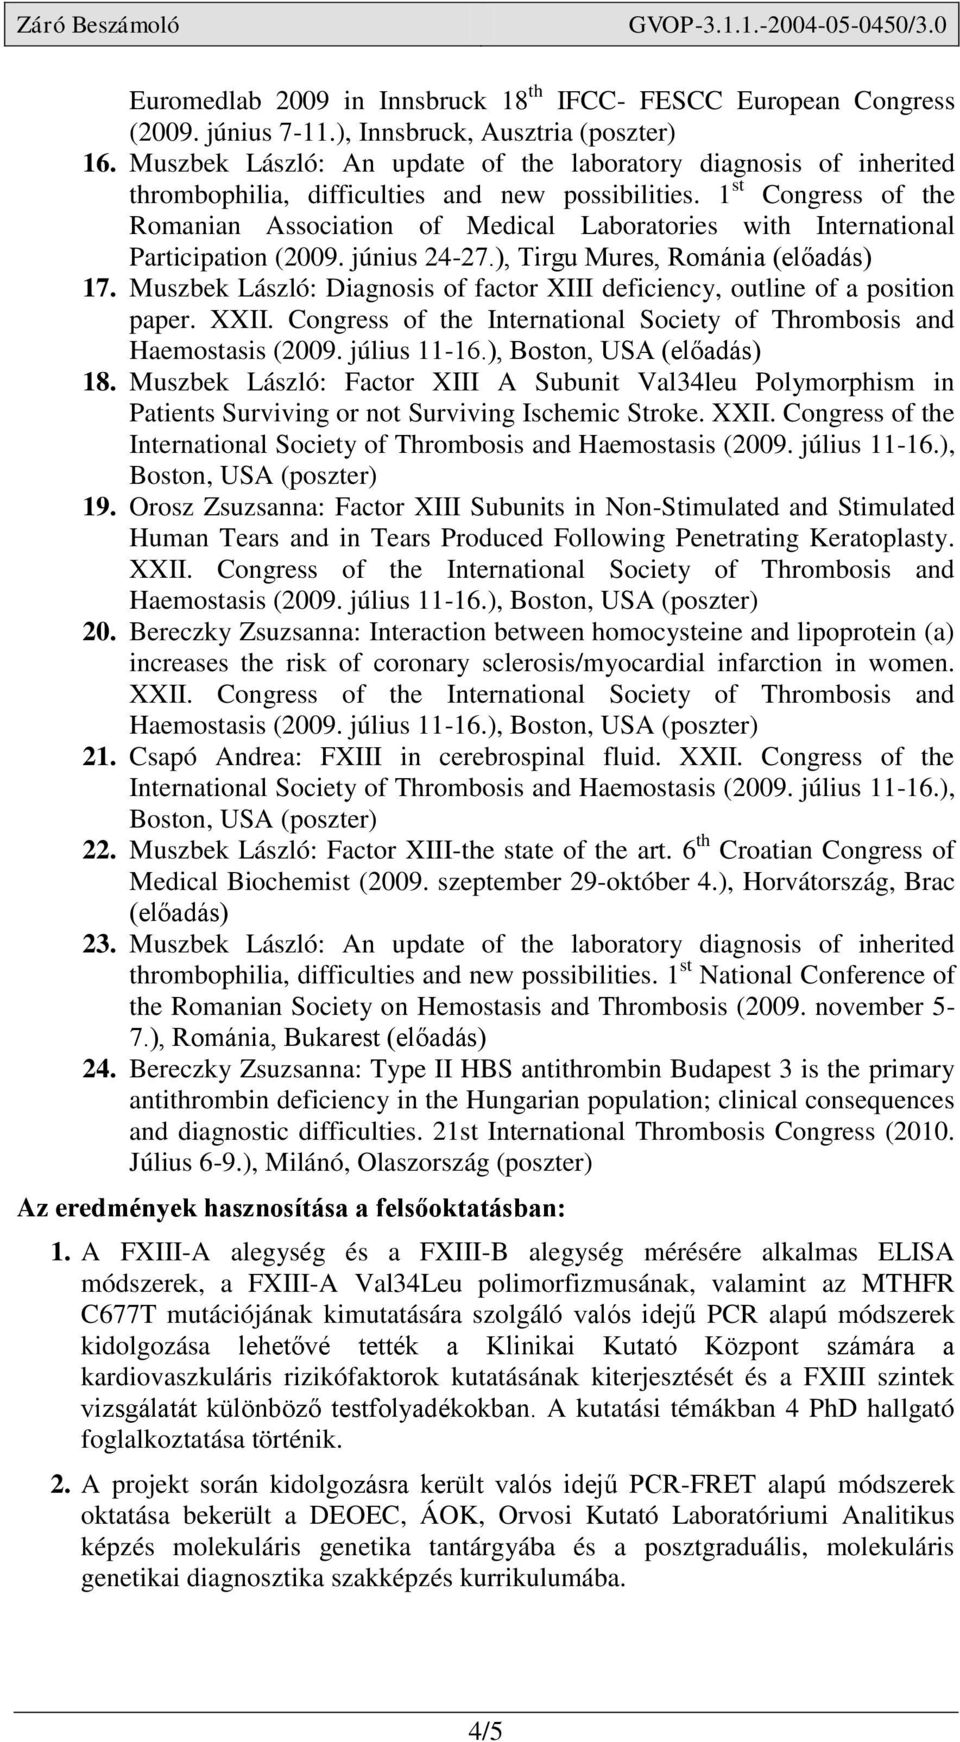 1 st Congress of the Romanian Association of Medical Laboratories with International Participation (2009. június 24-27.), Tirgu Mures, Románia 17.